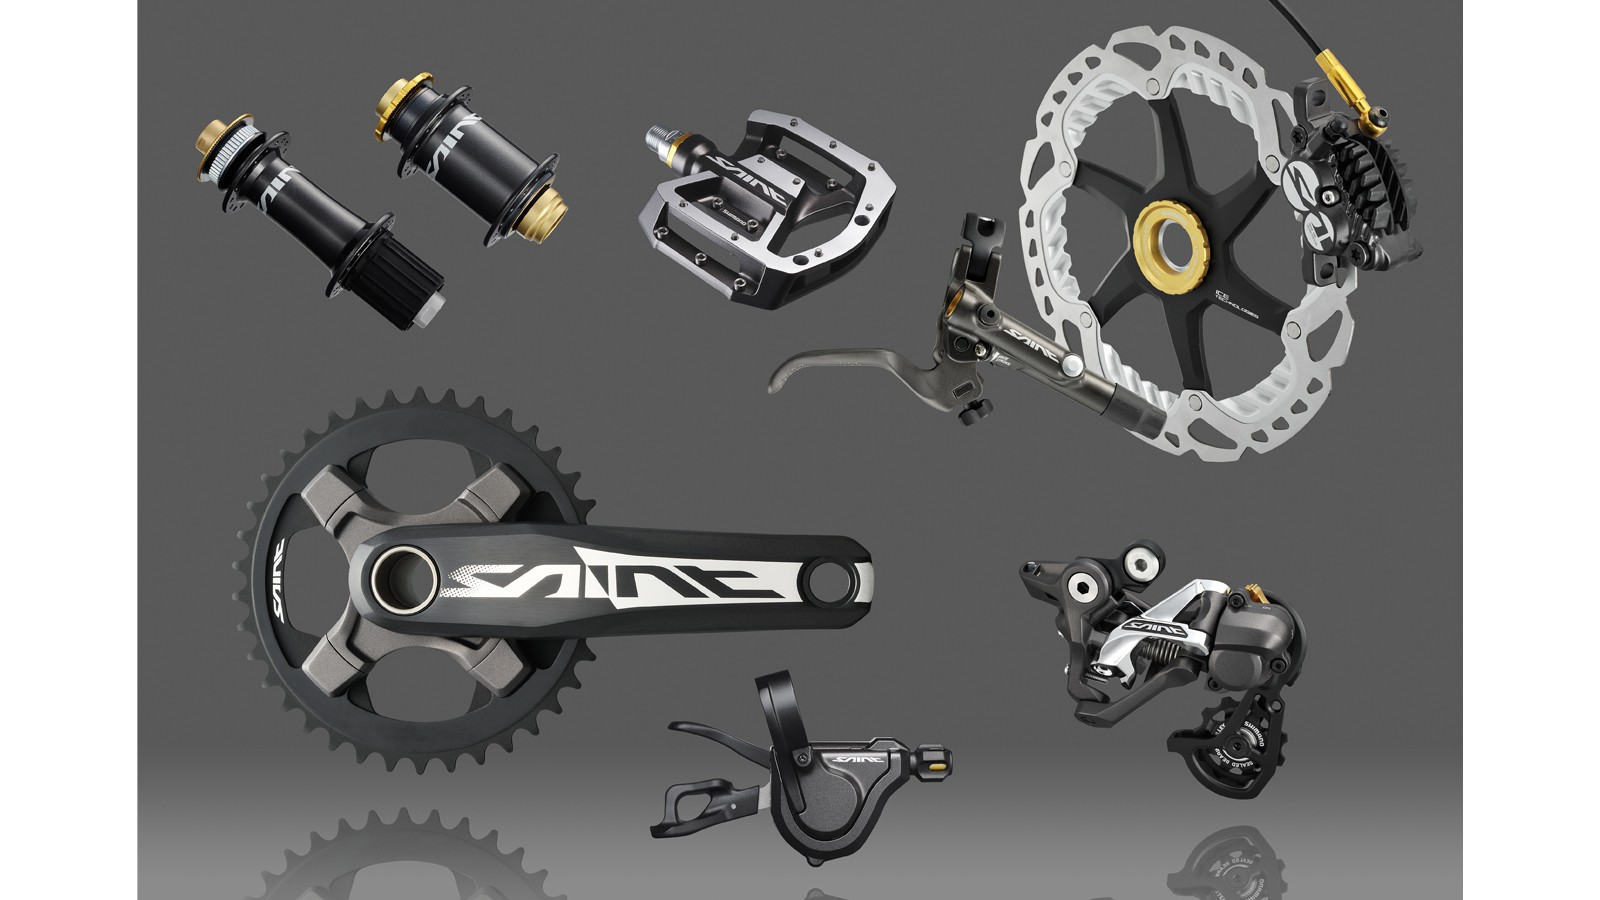 Saint is Shimano's top-level downhill focused groupset. Built with professional downhill-racing and extreme freeride in mind